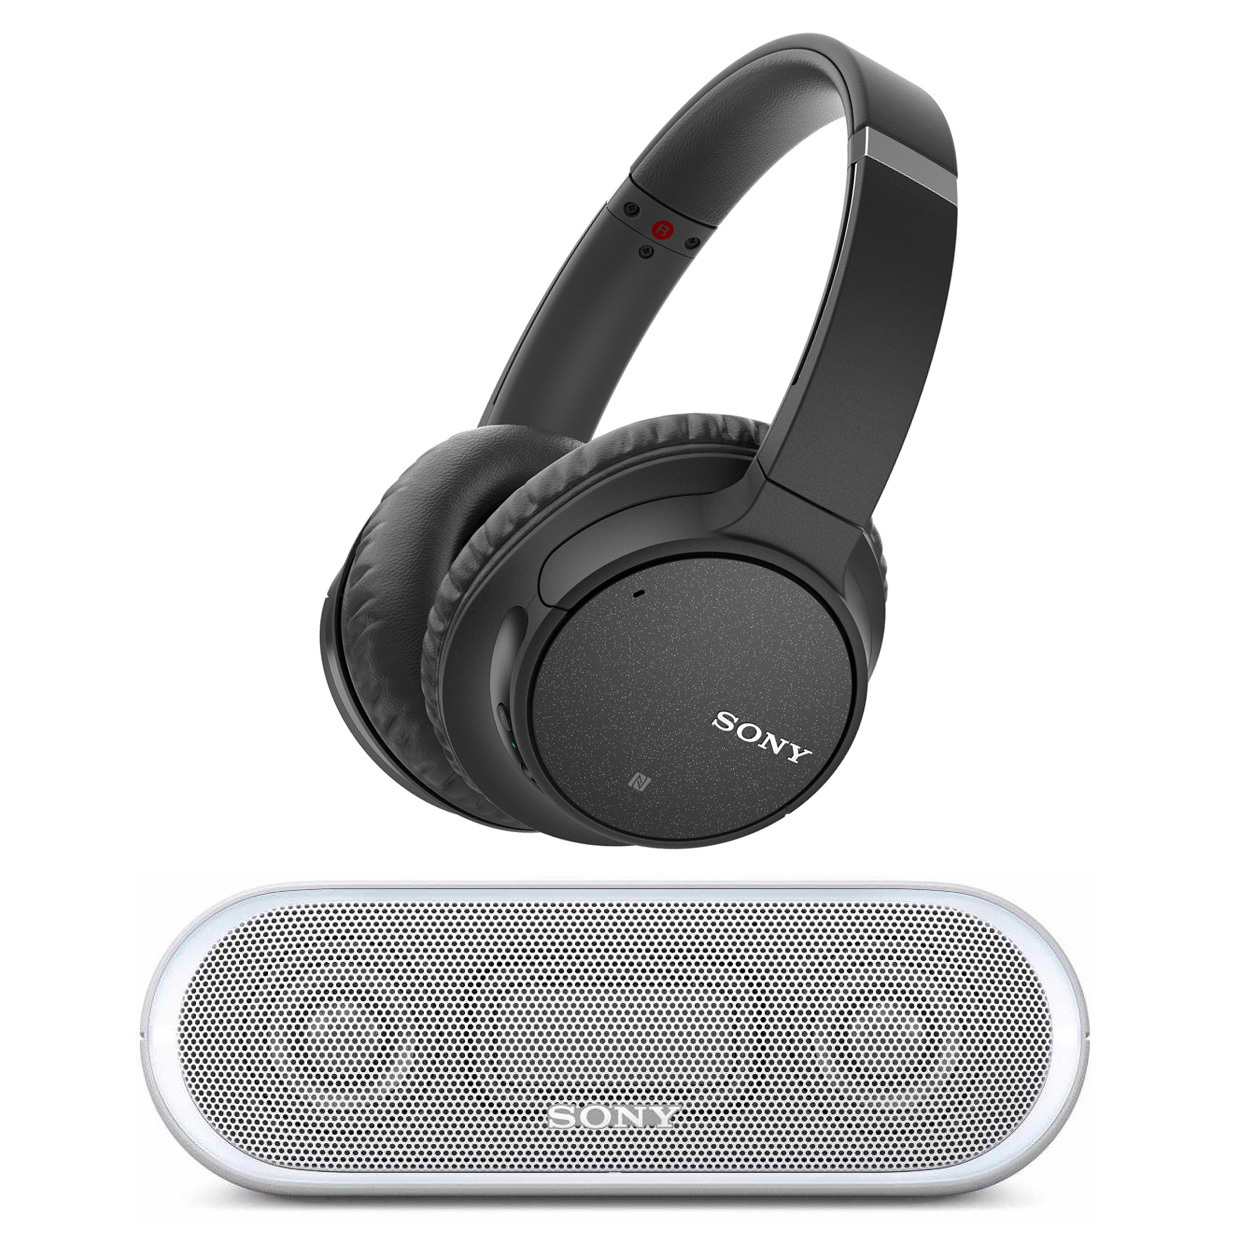 Sony WH-CH700N Noise Canceling Headphones (Black) with Bluetooth Speaker